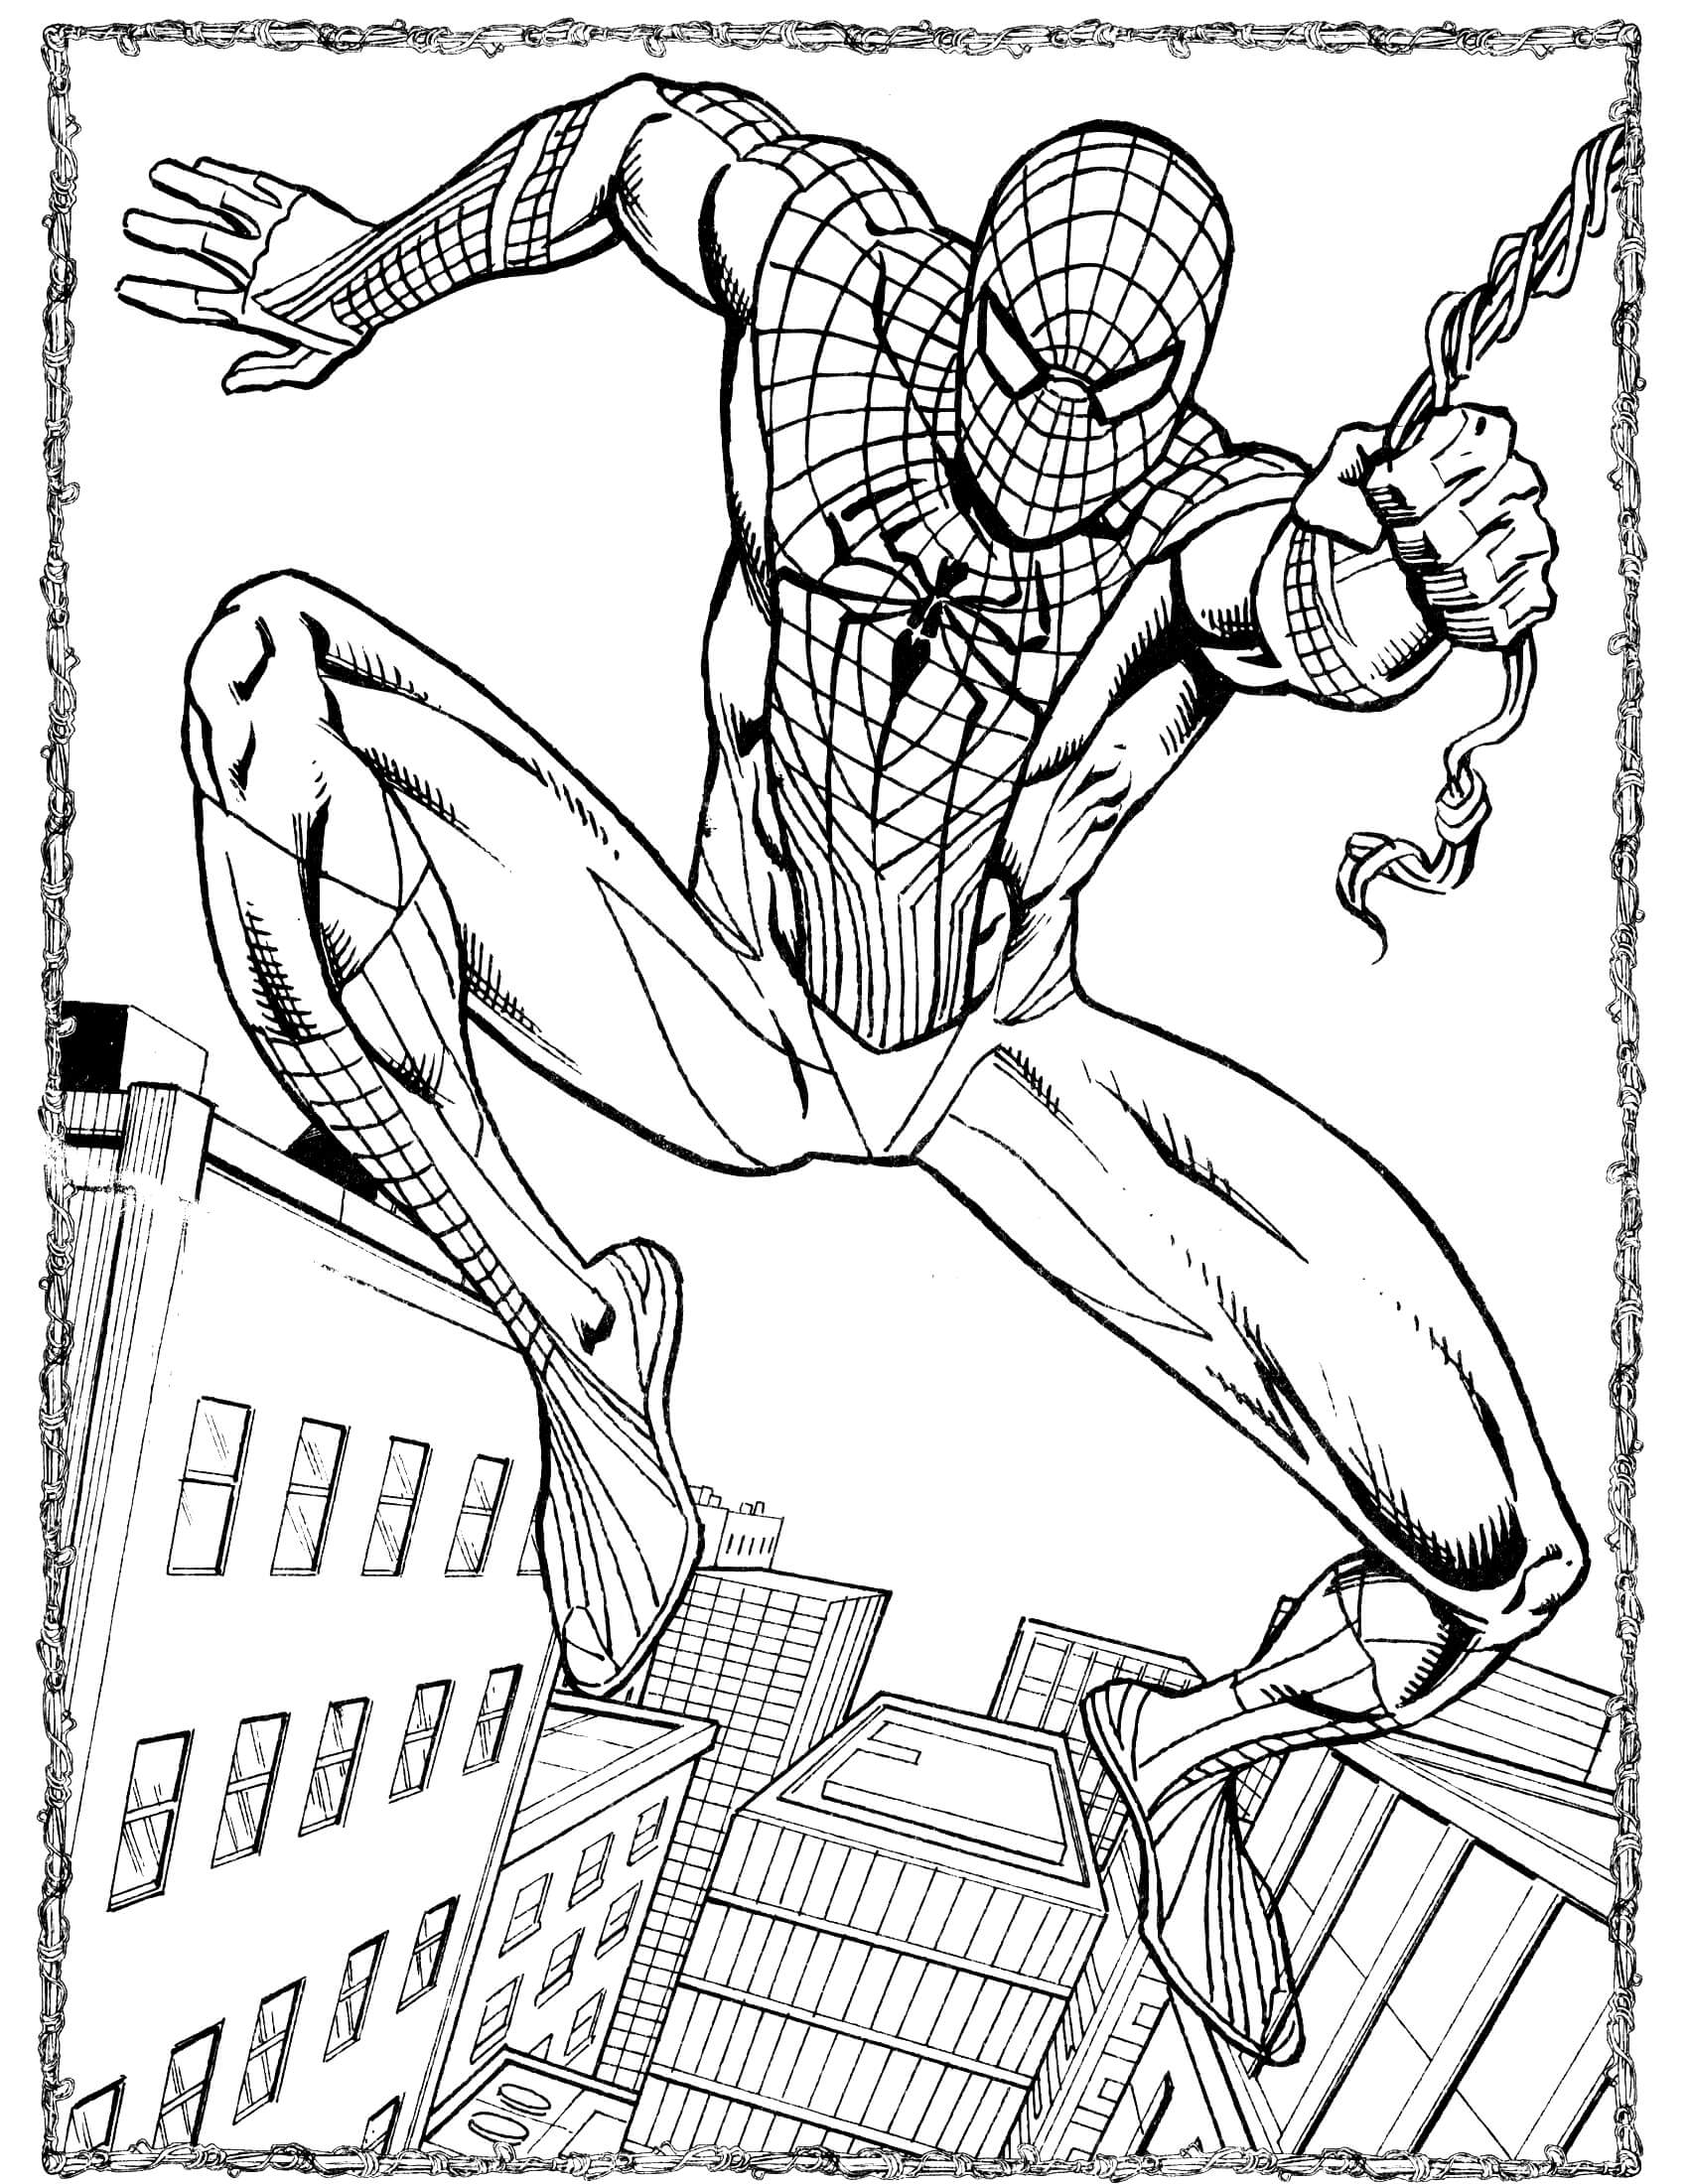 coloring sheet spiderman coloring pages spiderman 3 coloring pages coloringpages1001com spiderman pages coloring sheet coloring